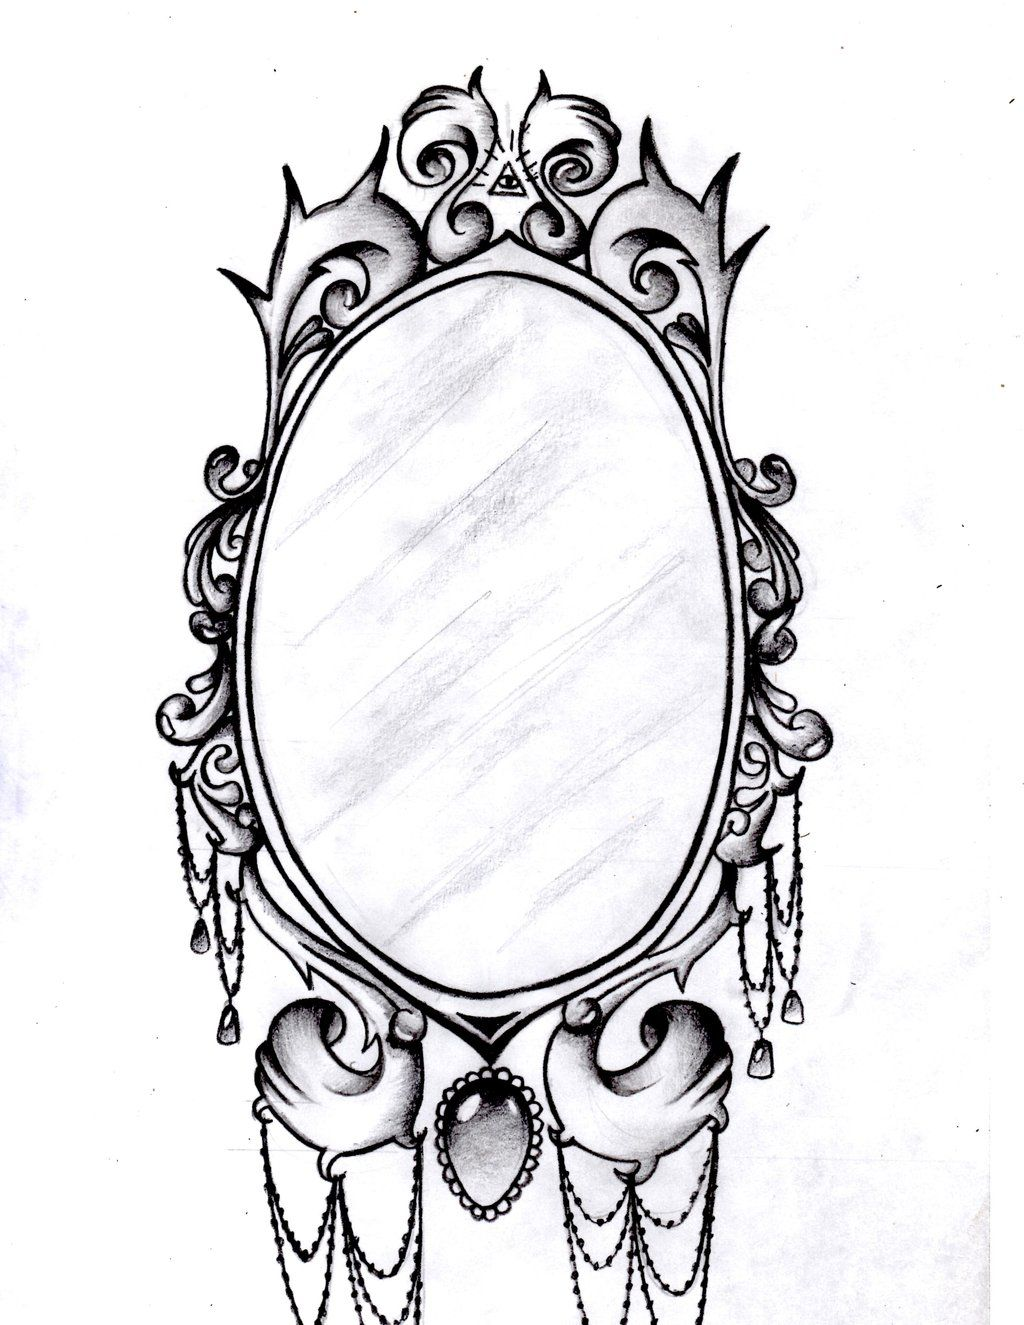 oval frame tattoo design heart shaped frame frame tattoo designs mirror by aimstar interfaces design 2013 2014